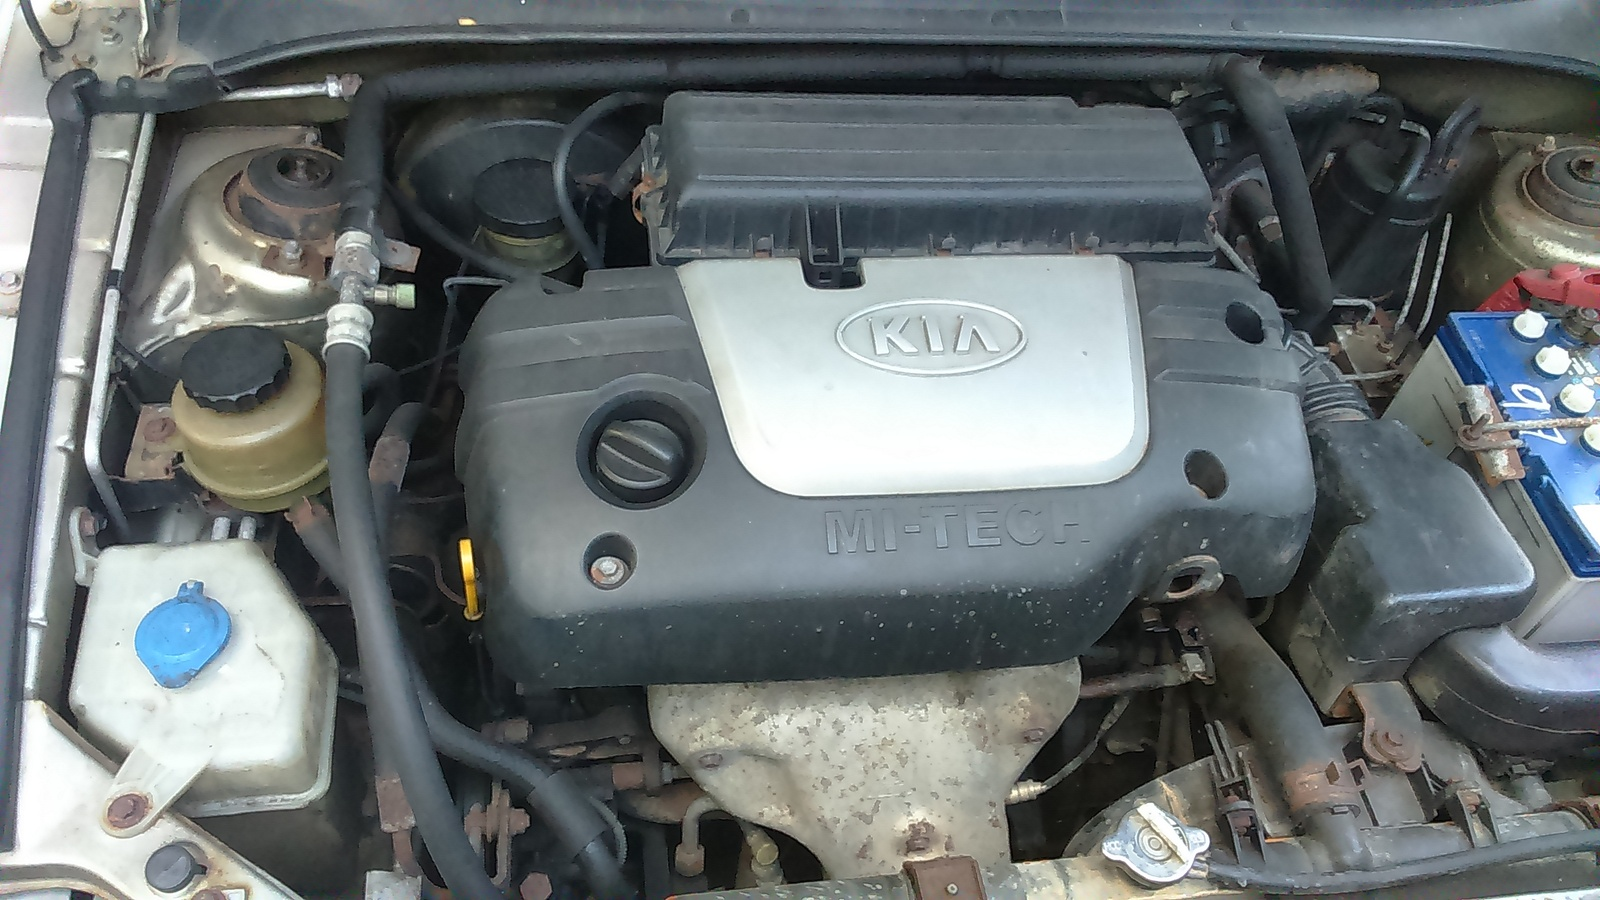 Kia Rio Questions - Black grease like substance kia rio ...